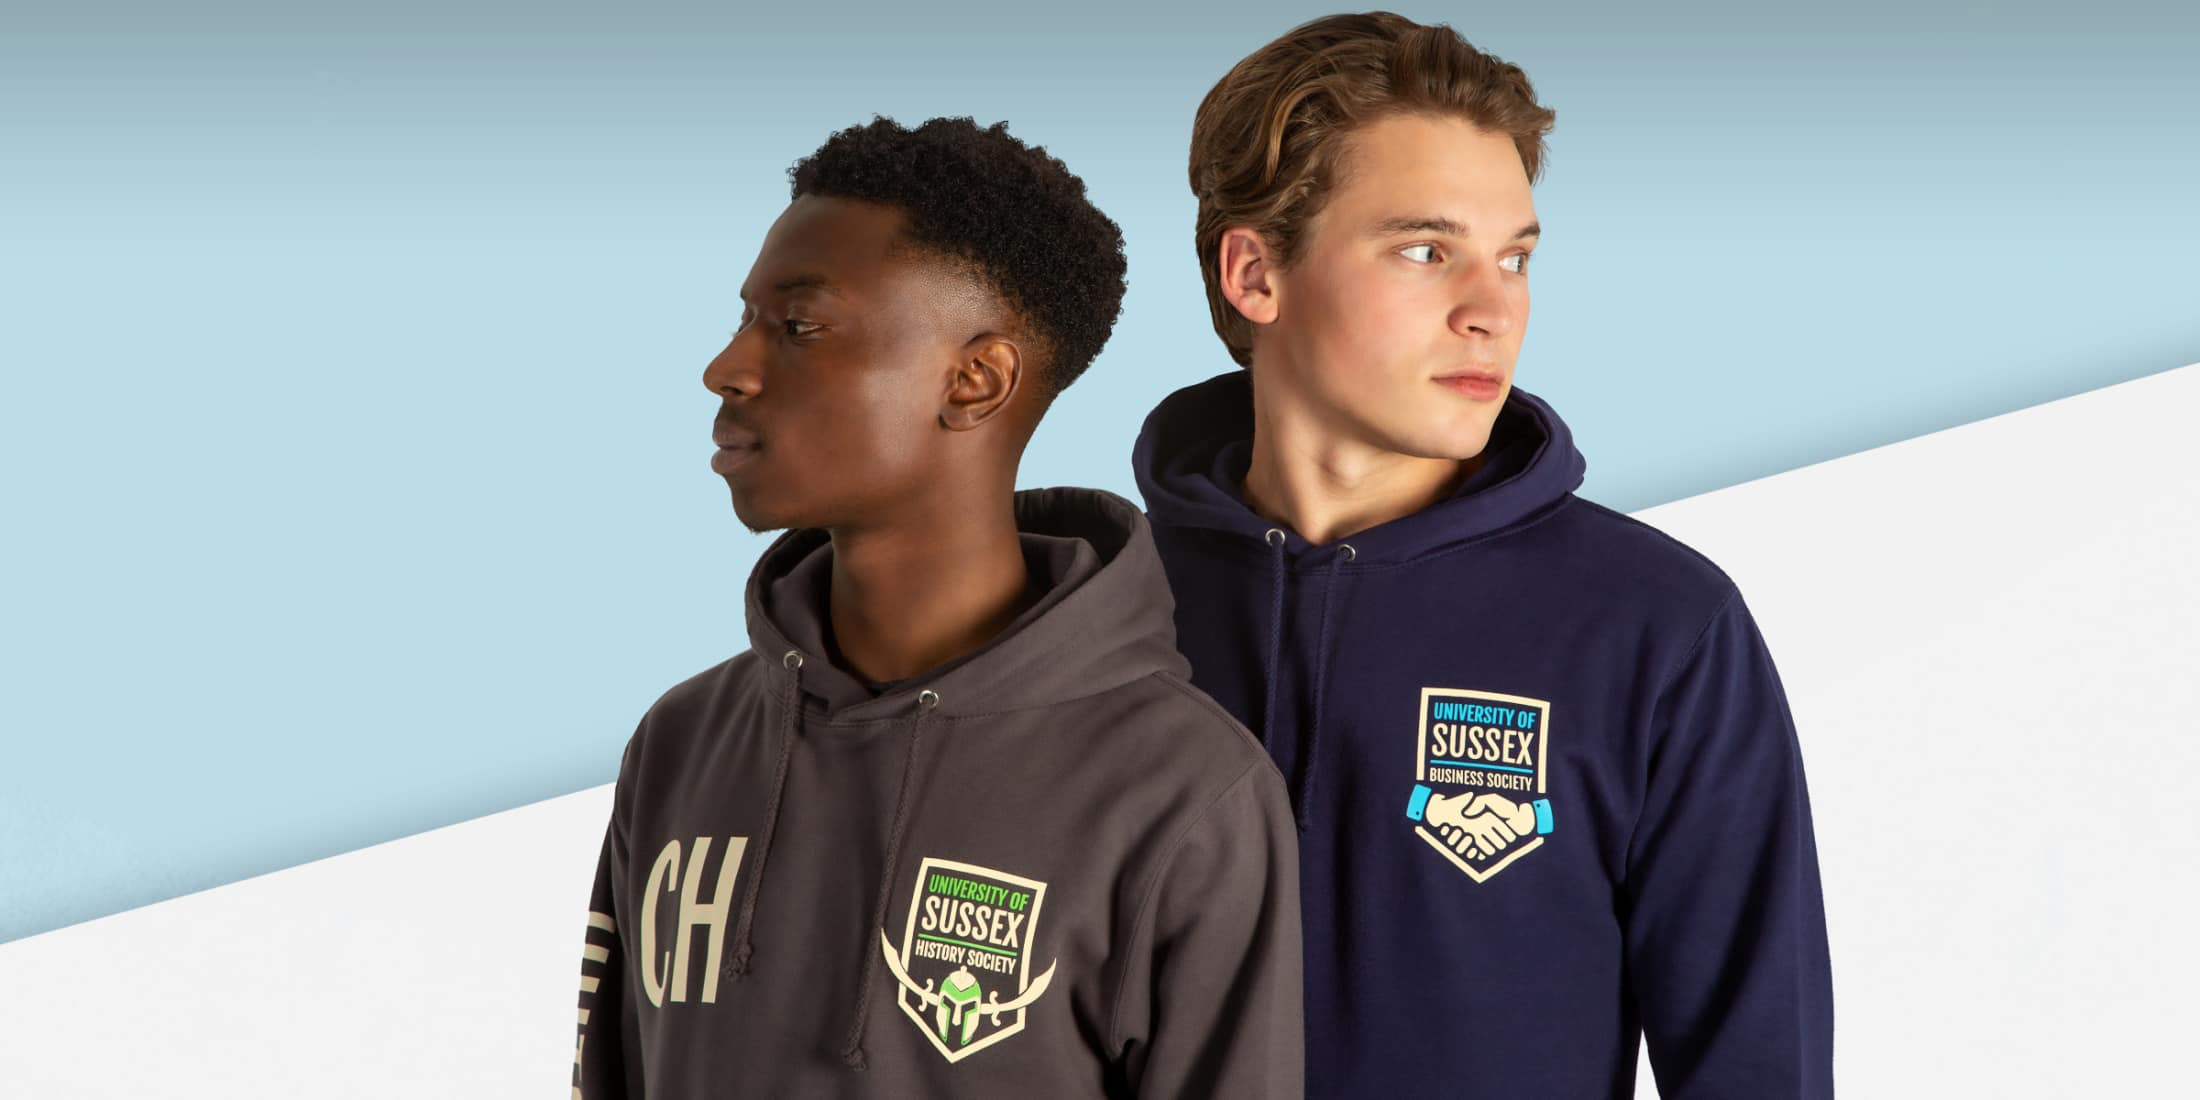 customise printed university hoodies